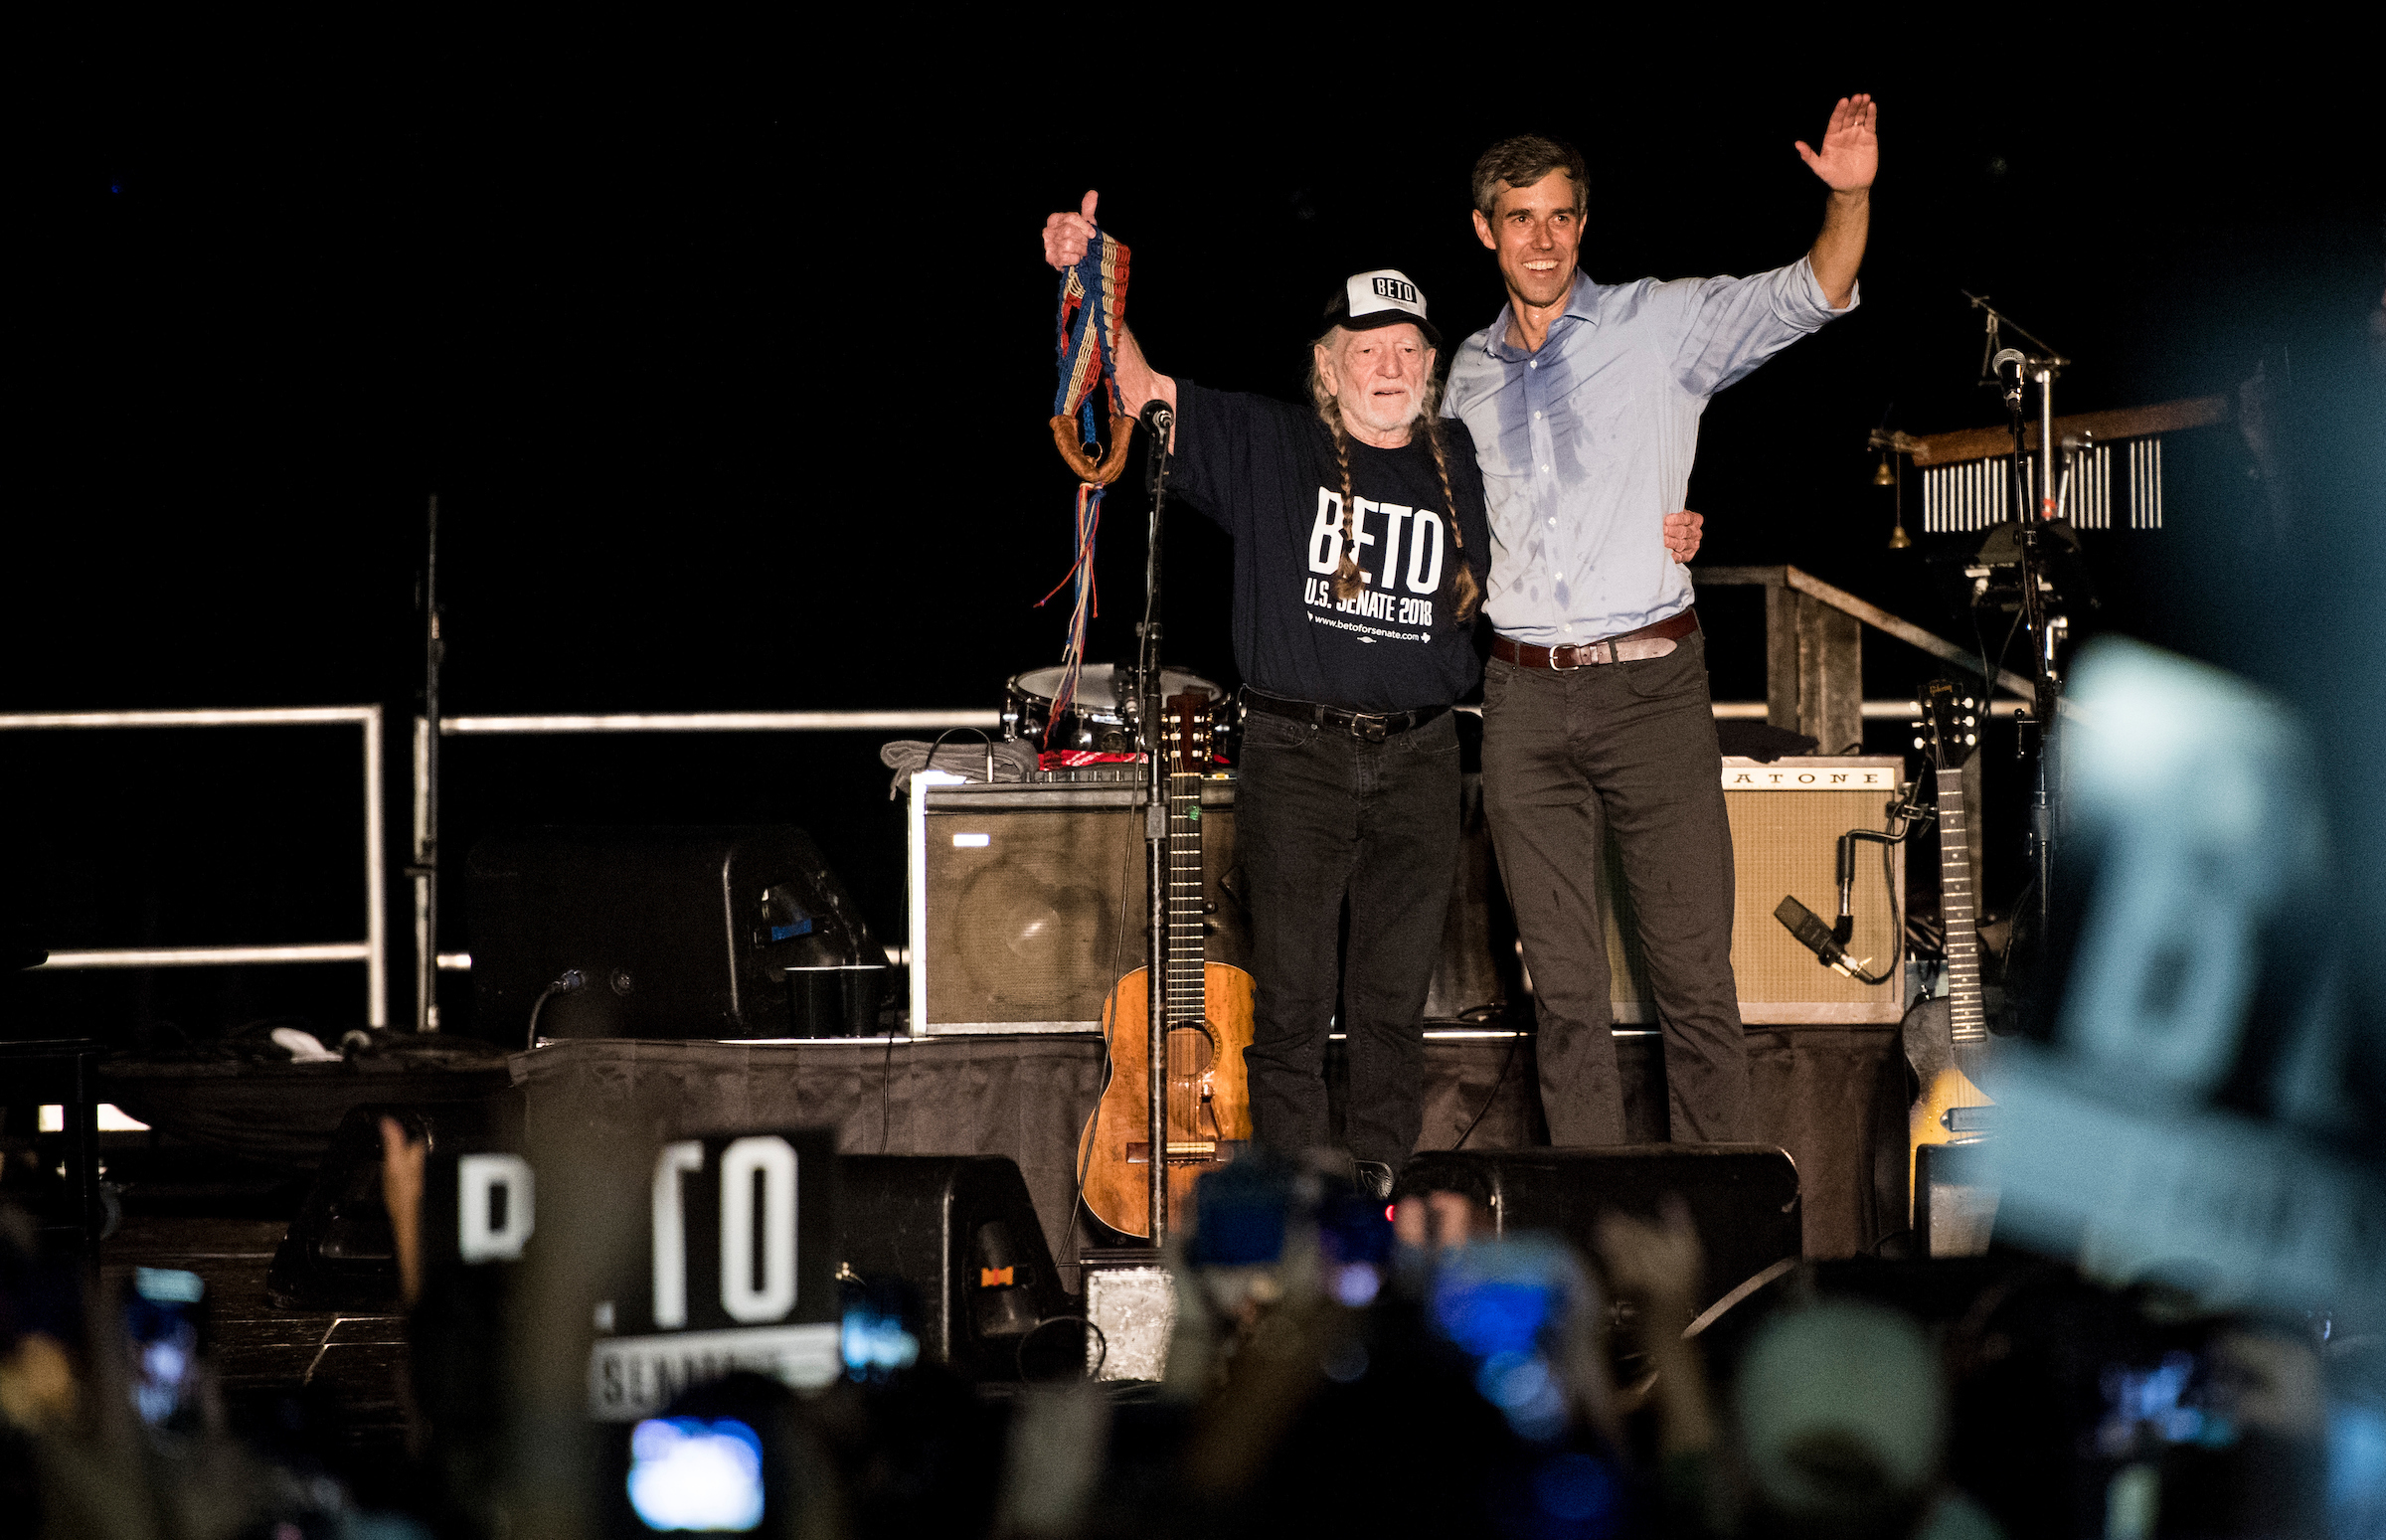 A sweaty Beto O'Rourke joined Willie Nelson onstage last weekend, and our own Bill Clark was there to capture the moment. Check out his other photos from his trip